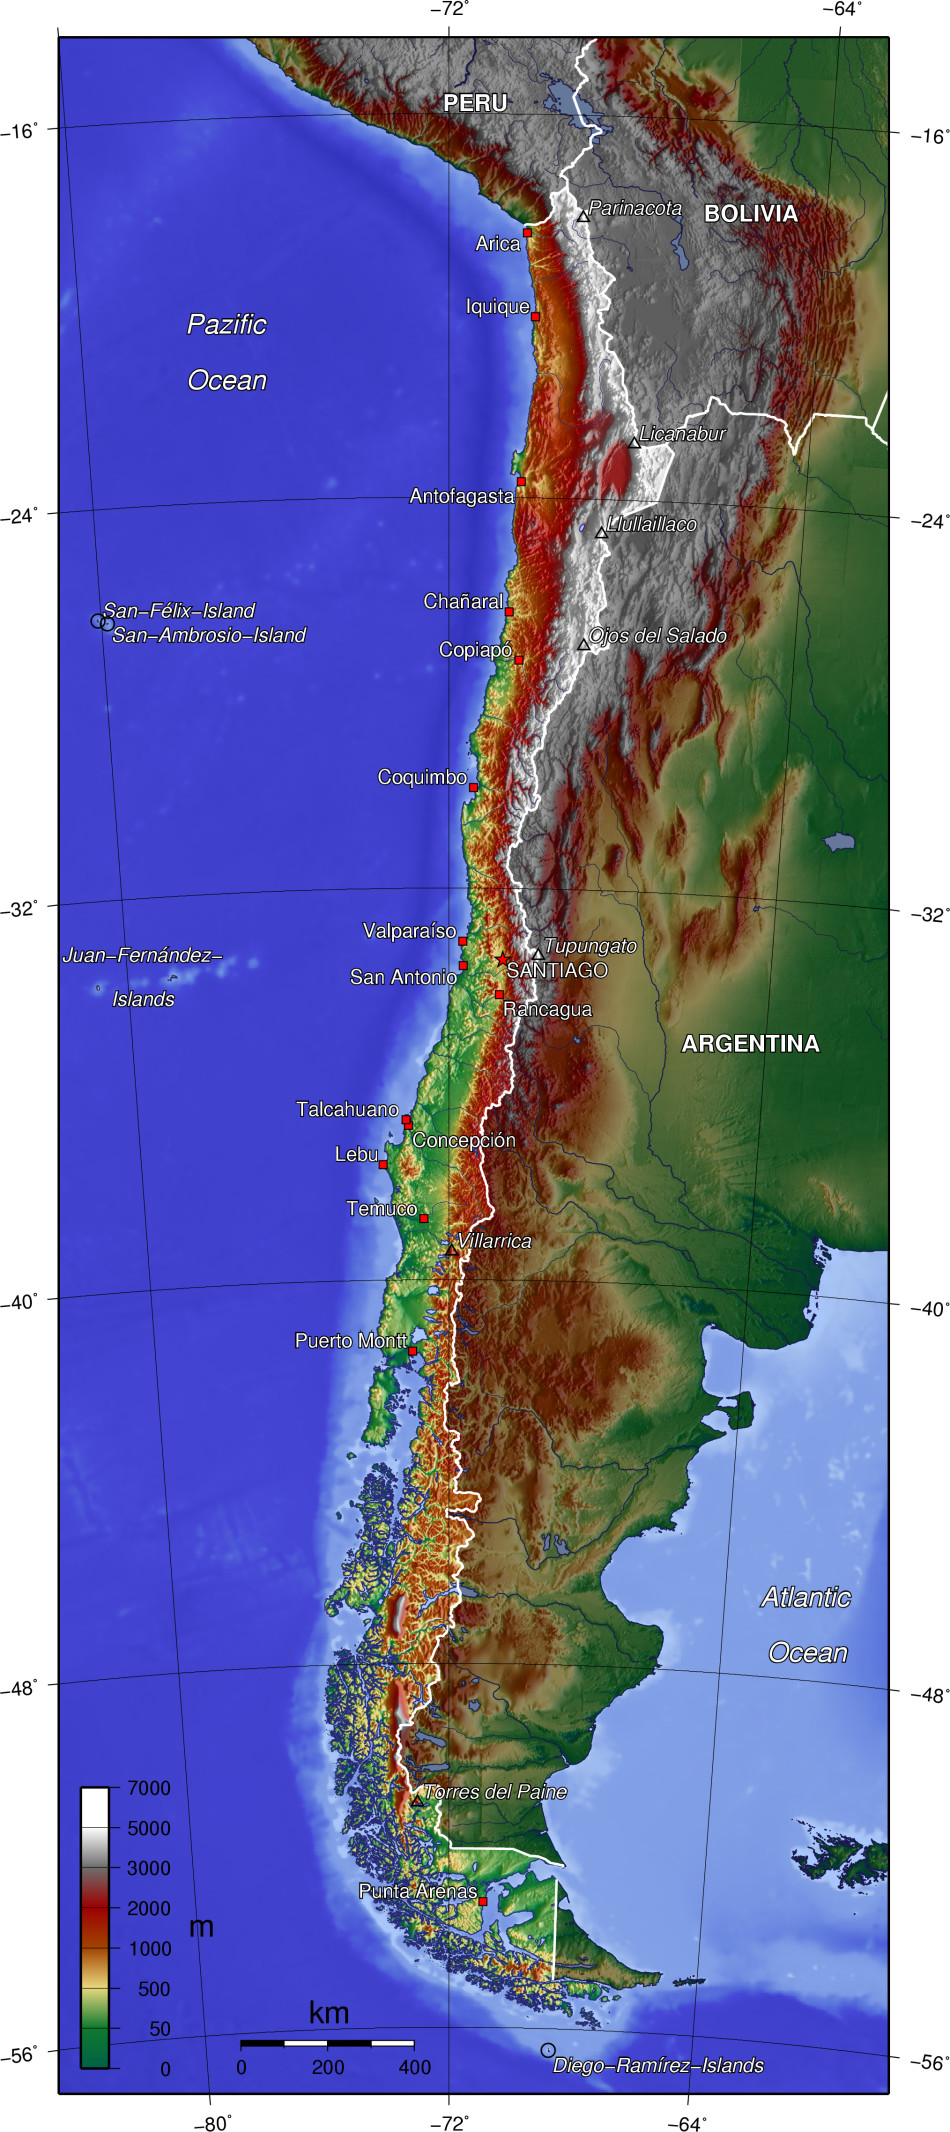 a geography of chile Chile is situated in southern south america, bordering the south pacific ocean and a small part of the south atlantic ocean chile's territorial shape is among the world's most unusual from north to south, chile extends 4,270 km (2,653 mi), and yet it only averages 177 km (110 mi) east to west.